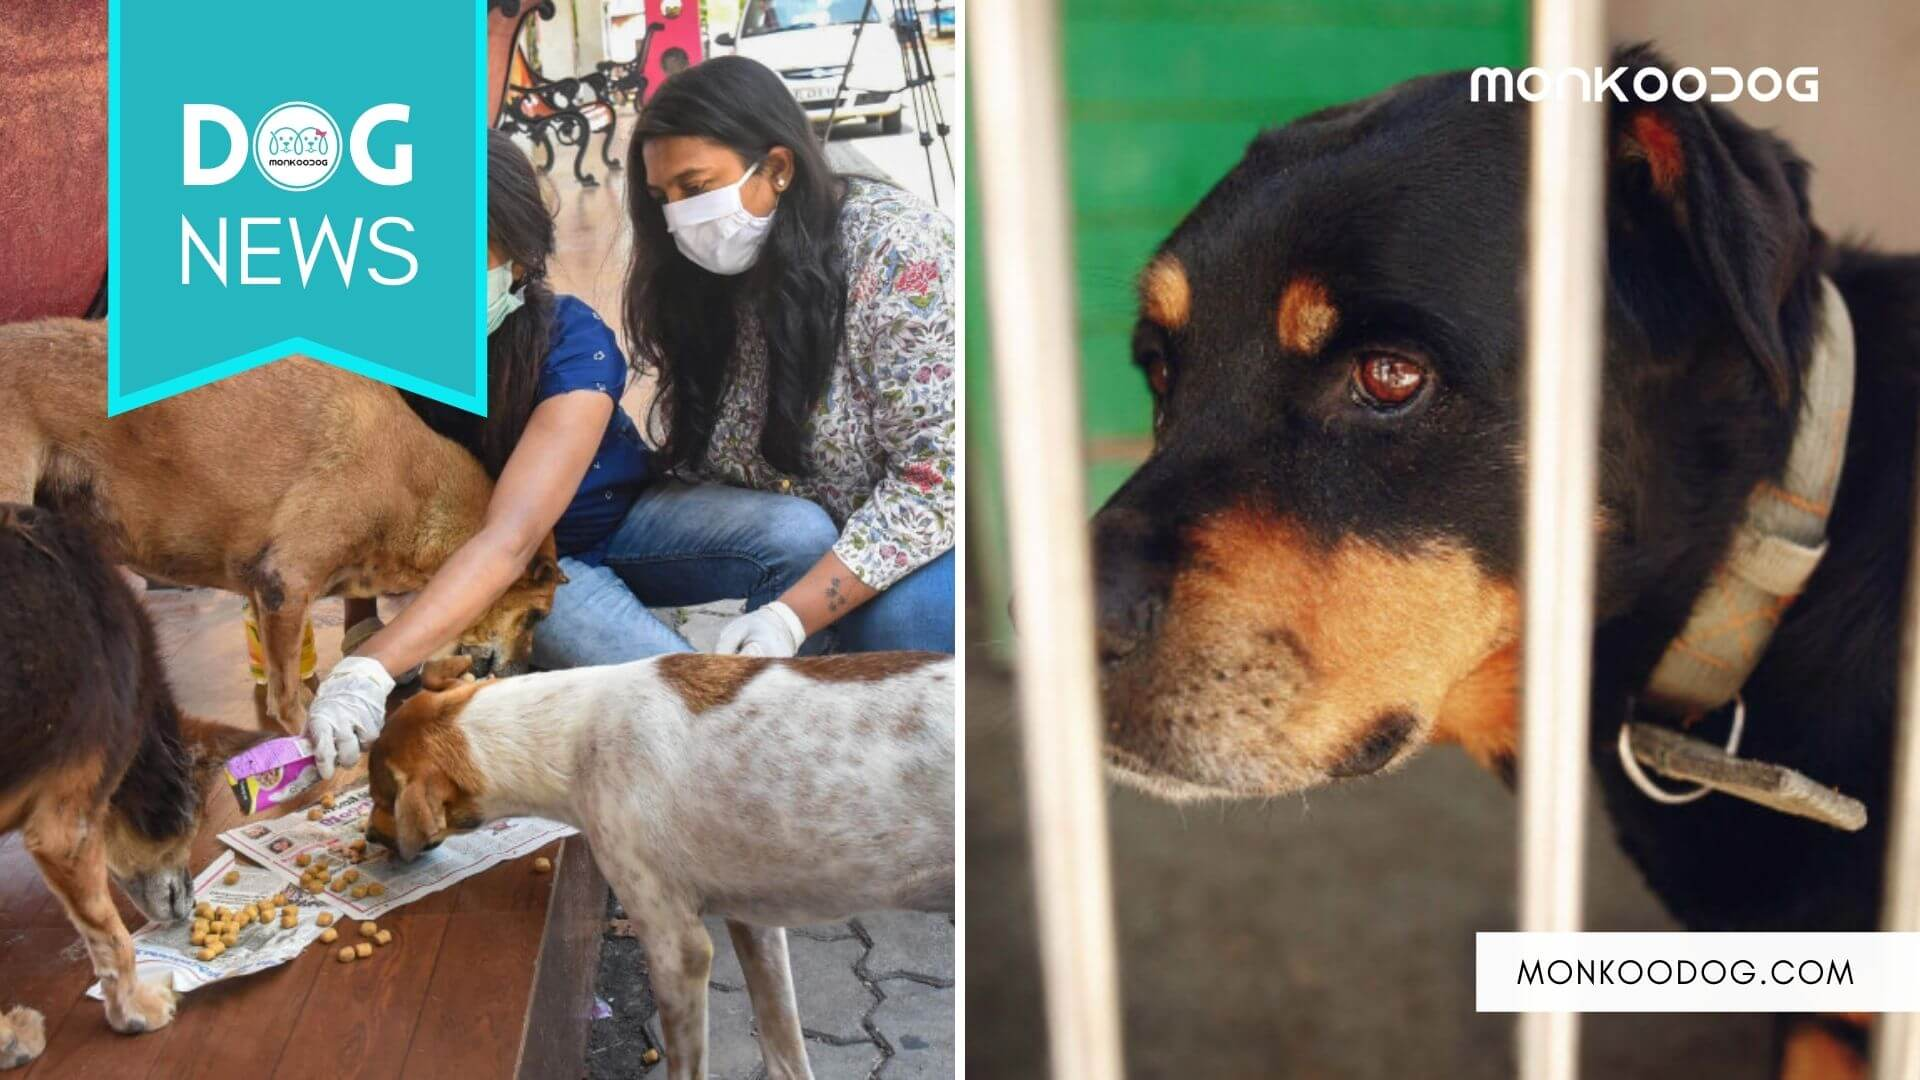 Two Animal Cruelty Incidents_ Priya Chauhan got pelted with stones, slipper, and abuse for feeding the strays, and China zoo caged a Rottweiler instead of Wolf.